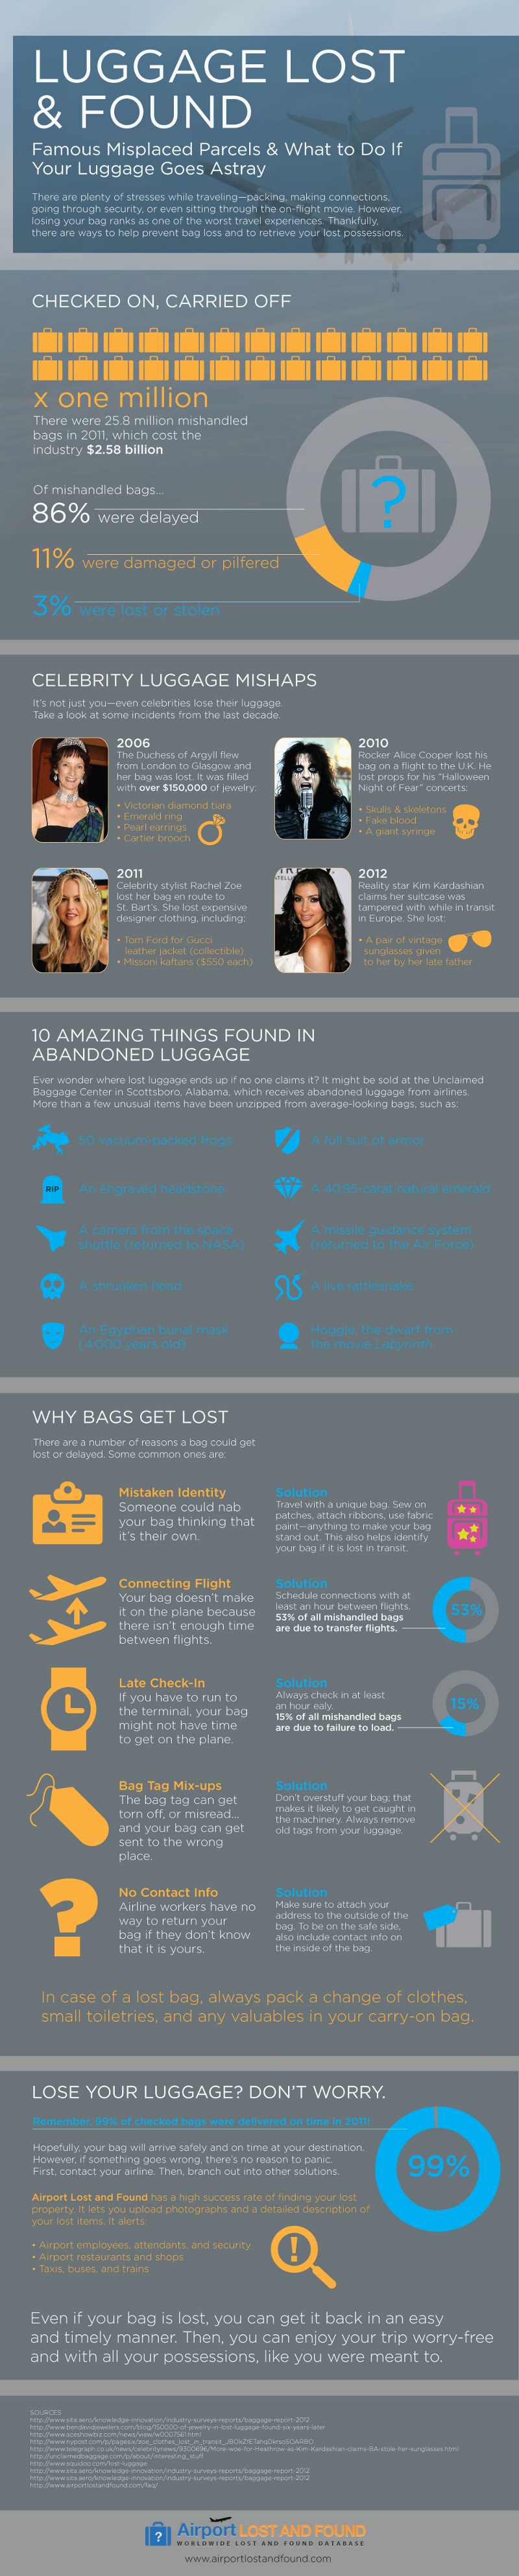 Lost Luggage Facts and Statistics